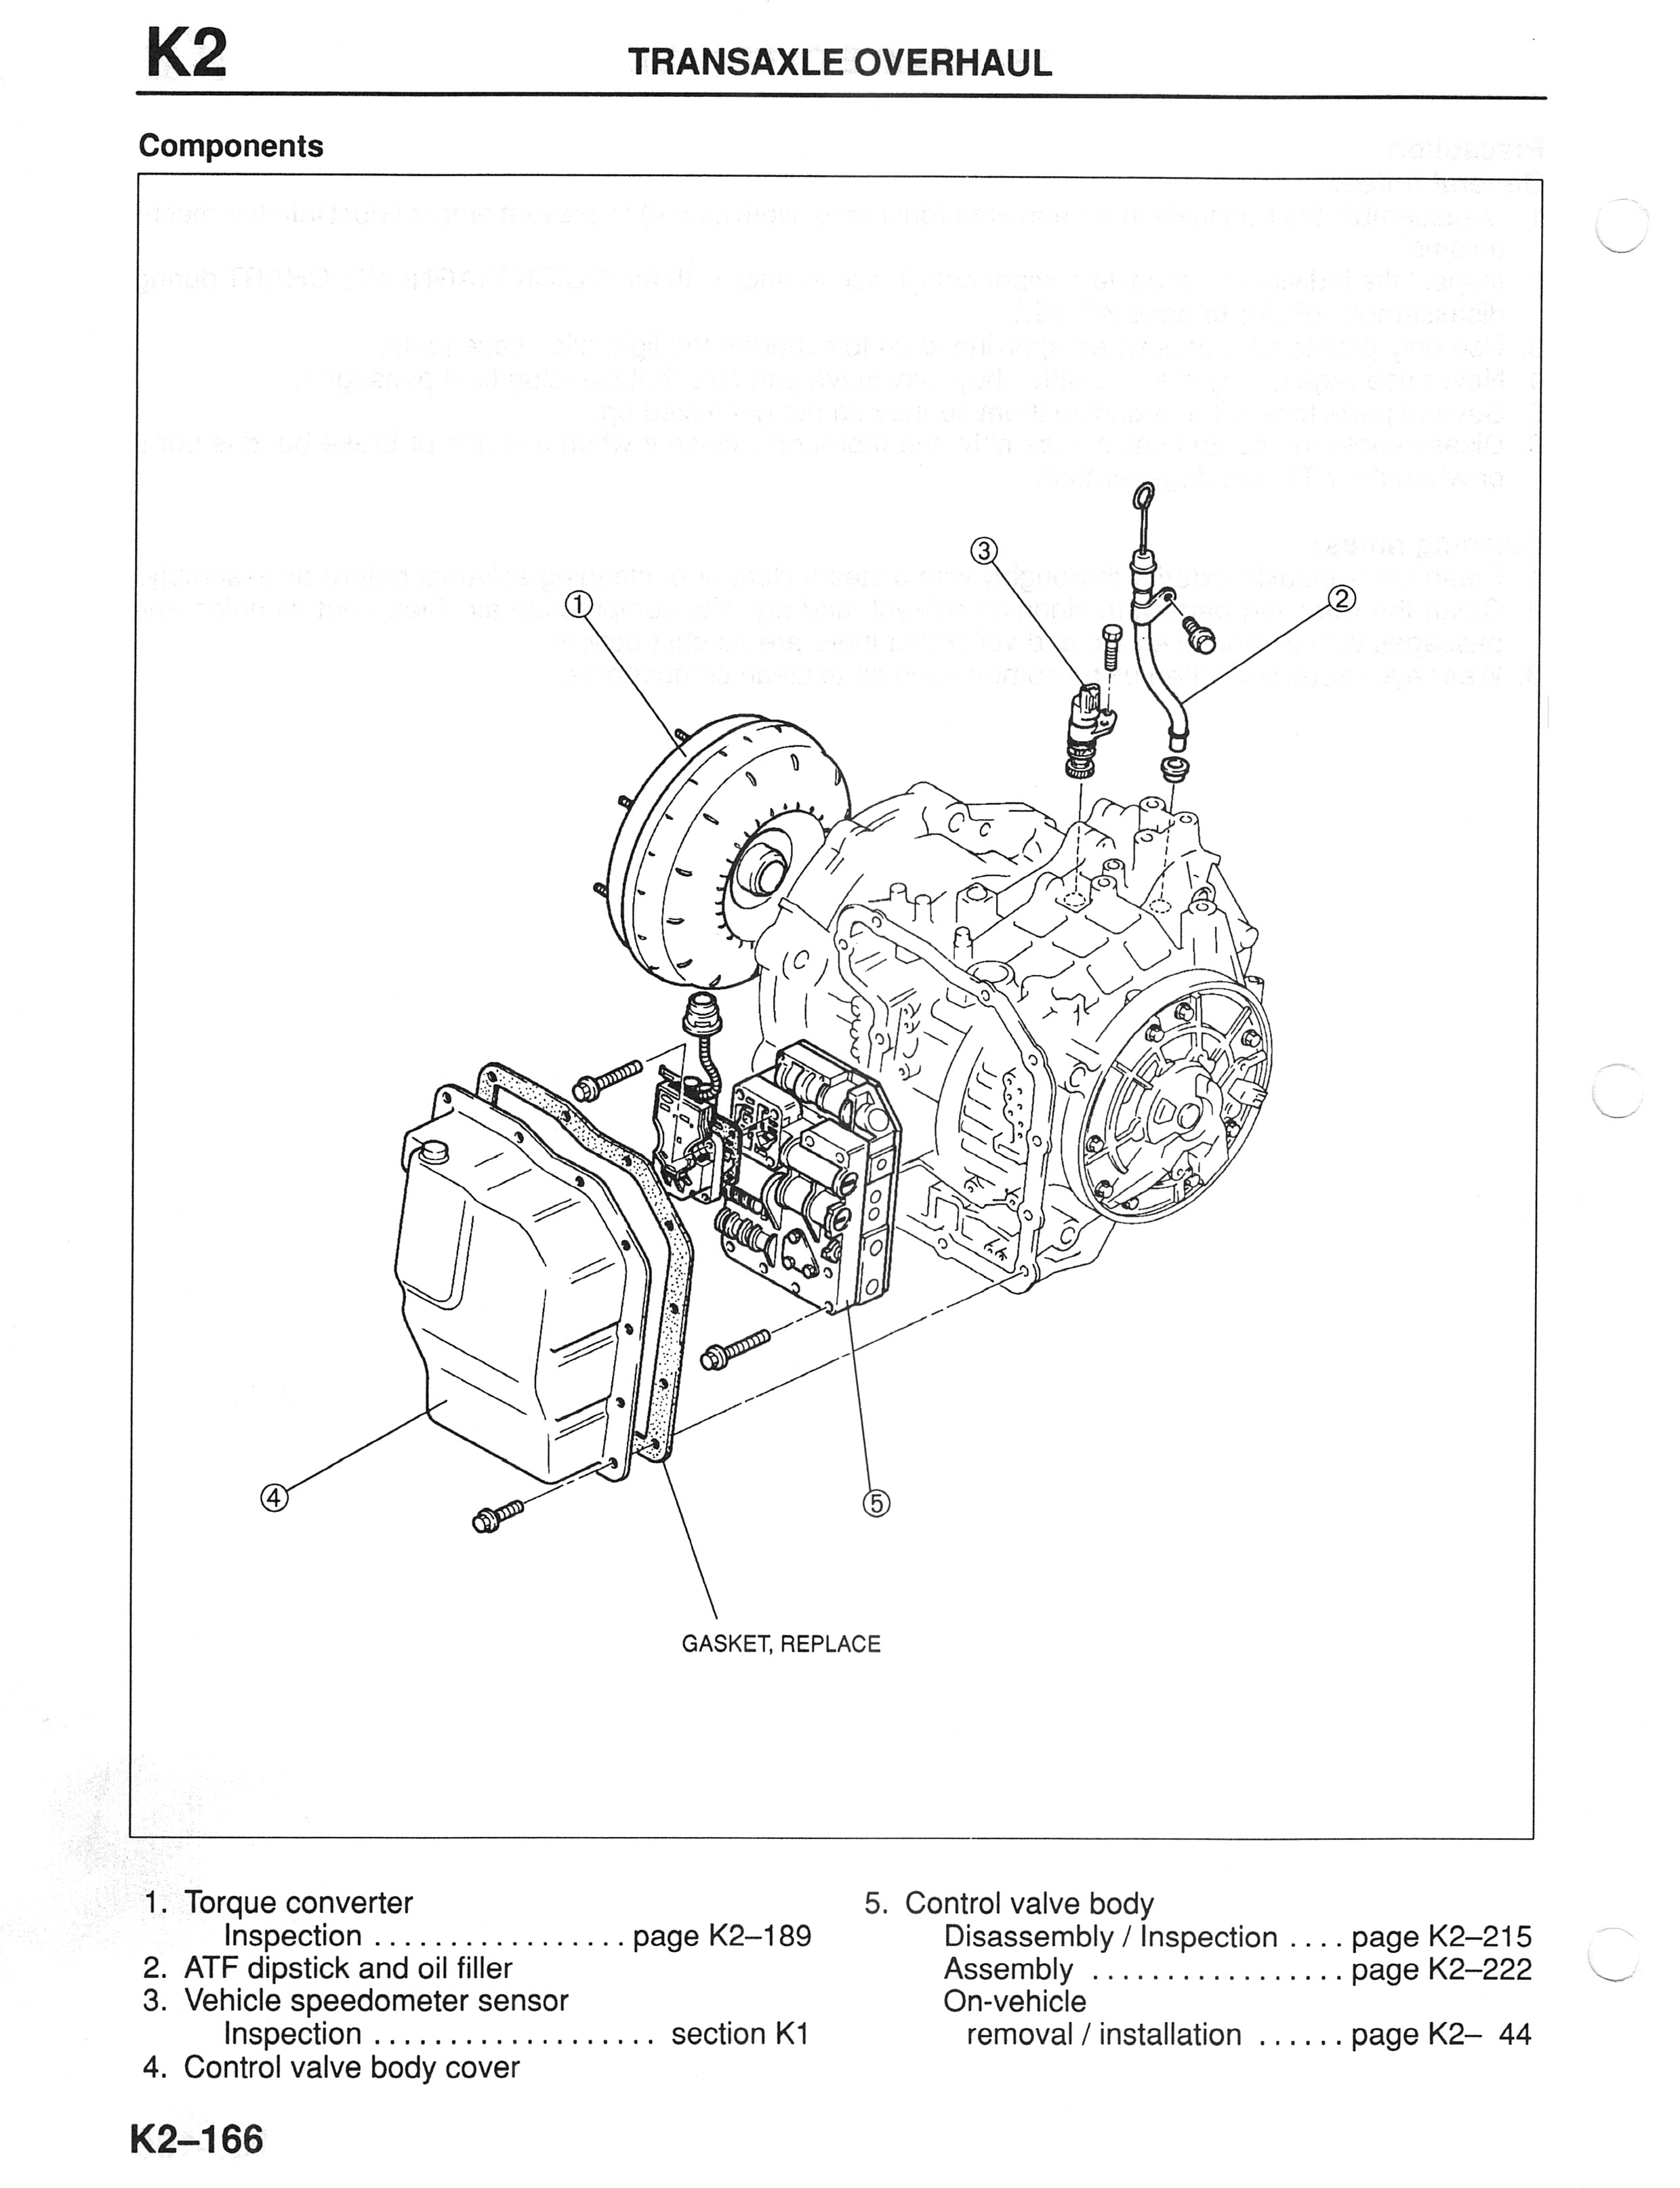 42646 1997 Mazda 626lx 20l 4 Cyl Has Filter In Transmission on 2002 Mazda Millenia Engine Diagram